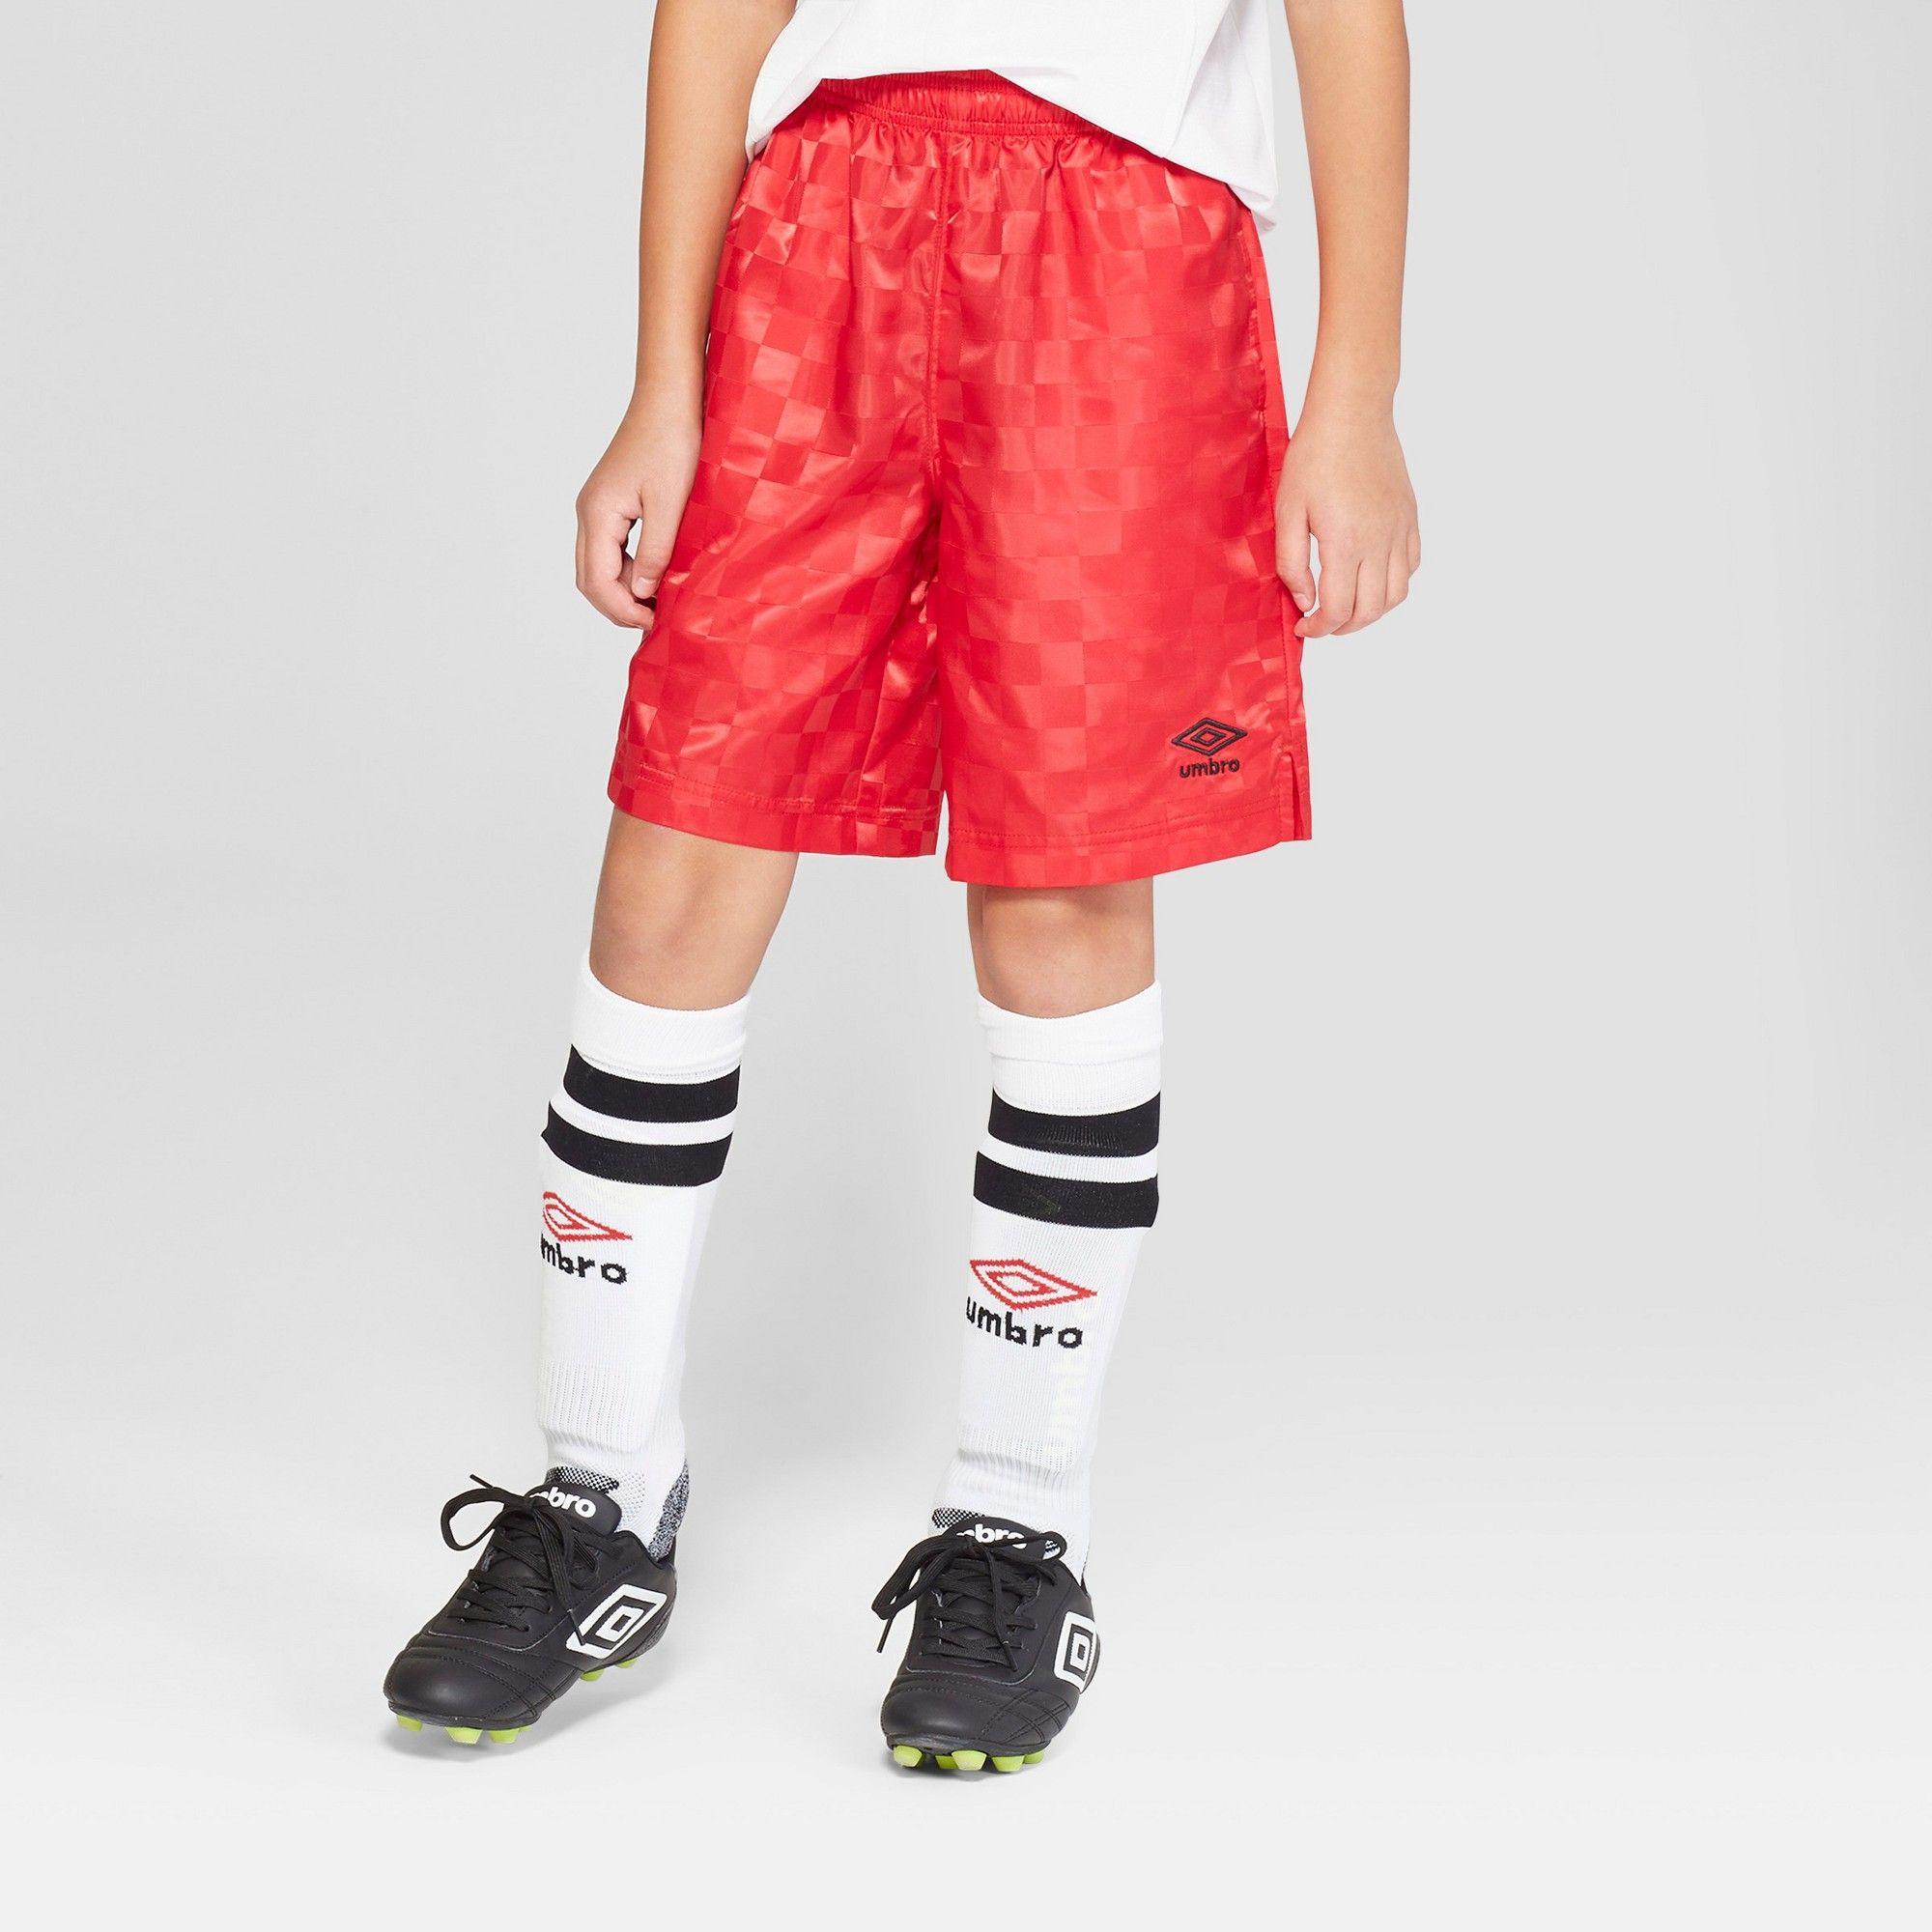 fccb1b52a Umbro Boys' Checkerboard Shorts - Red XS | Products | Soccer shorts ...